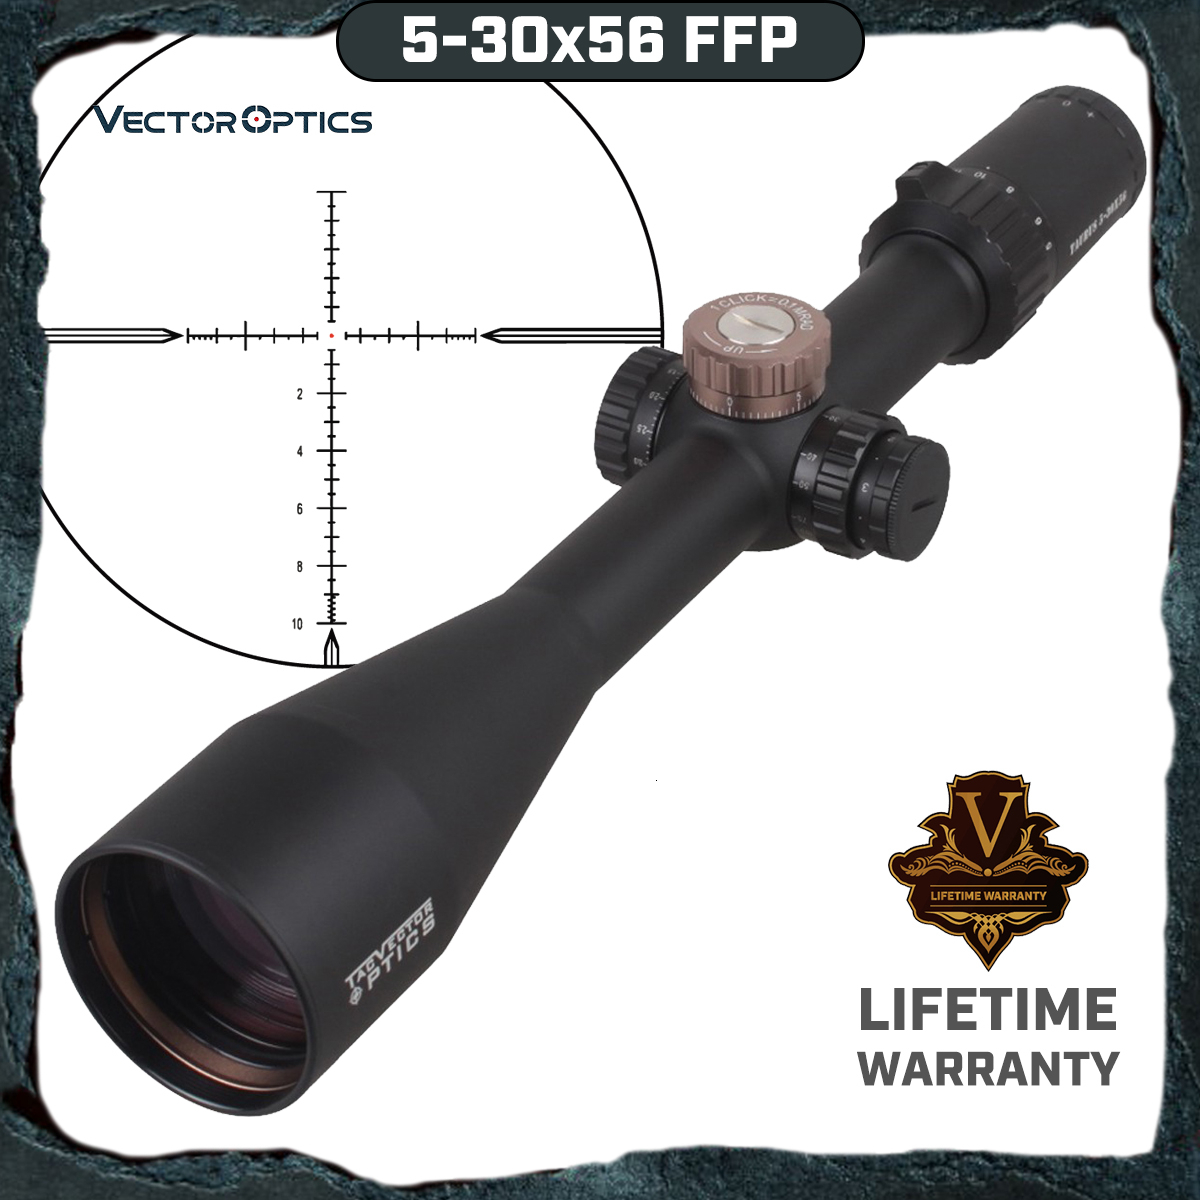 Vector Optics Taurus 5-30x56 First Focal Plane Military Tactical Riflescope Reticle High Quality Long Range Hunting Scope image